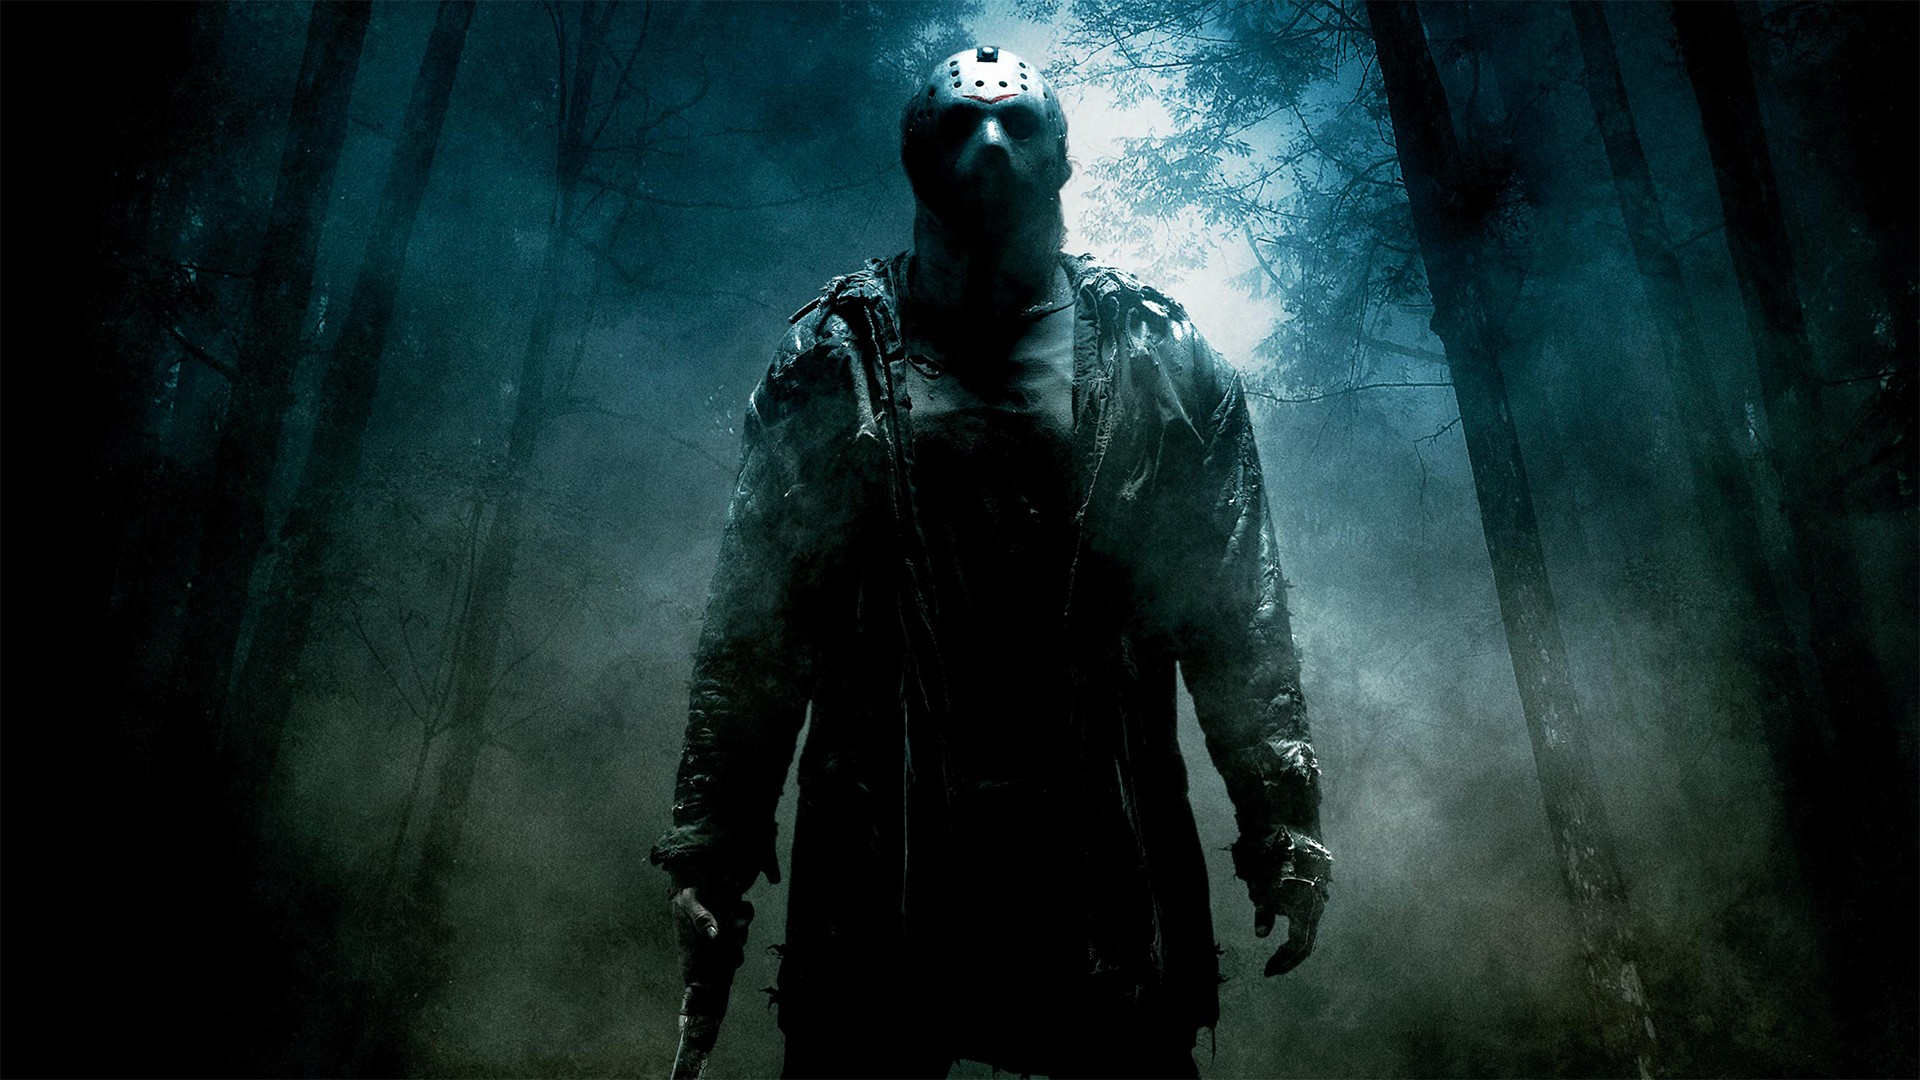 friday the 13th movie wallpaper - photo #1